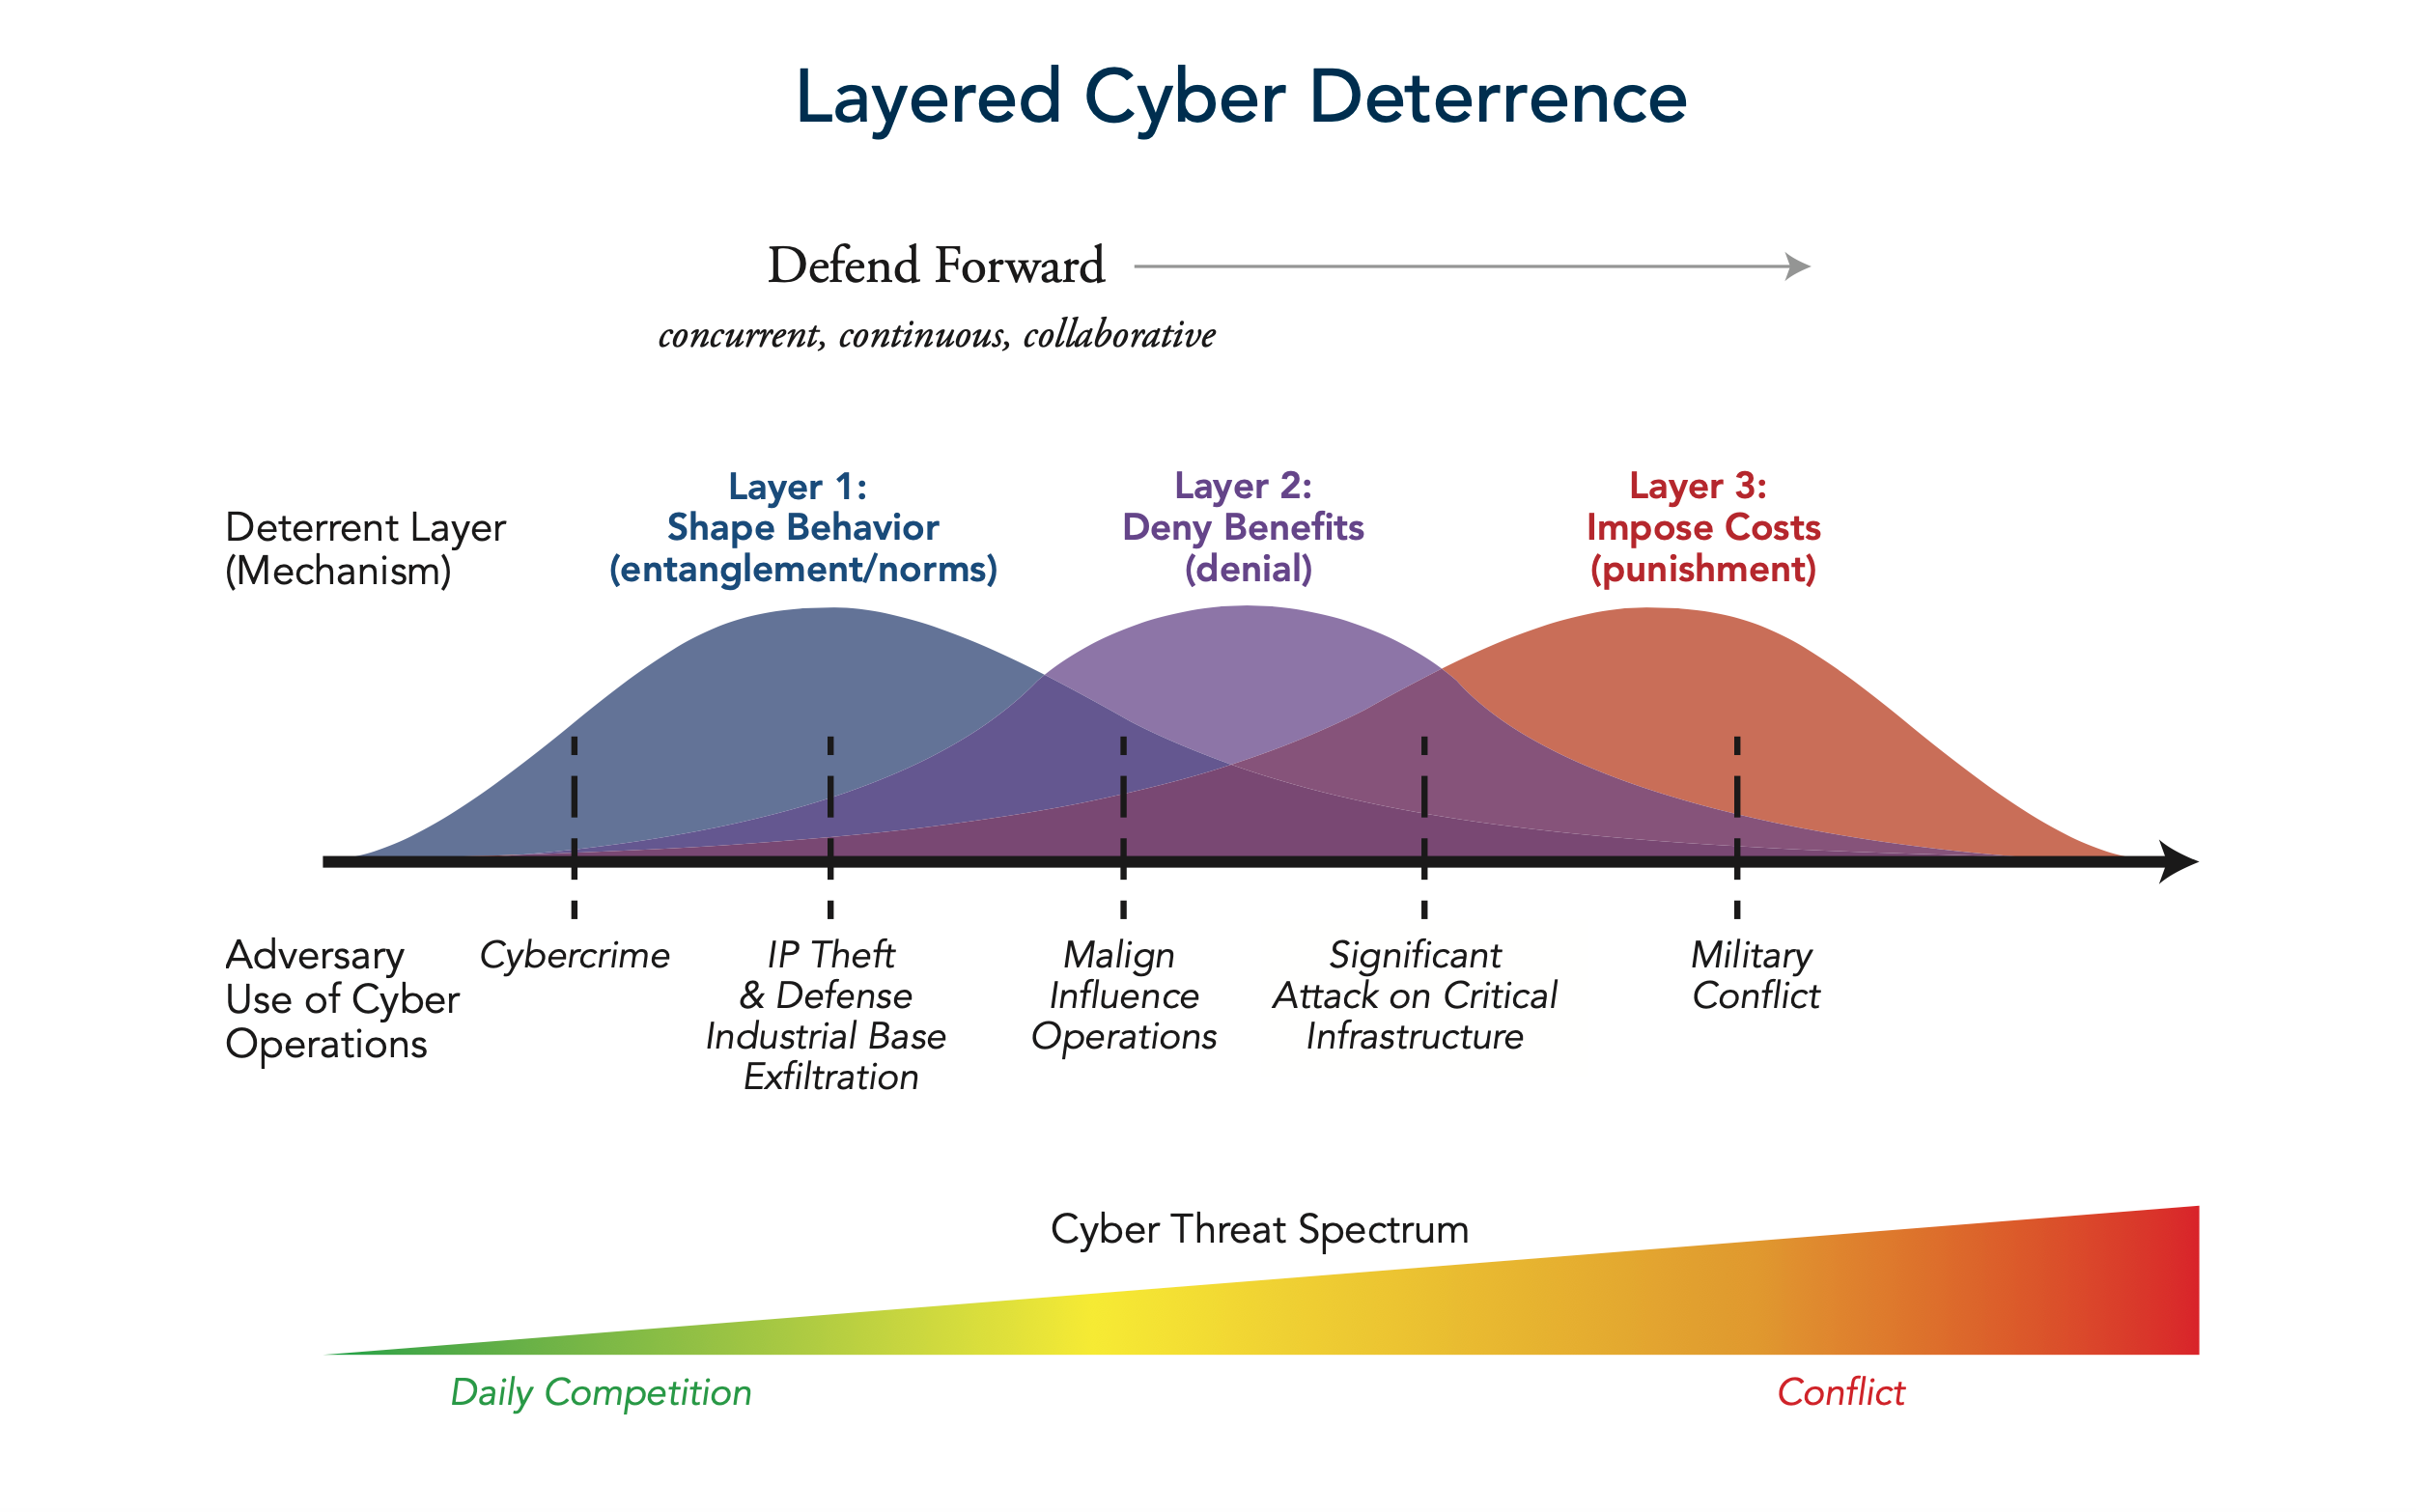 Layered Cyber Deterrence